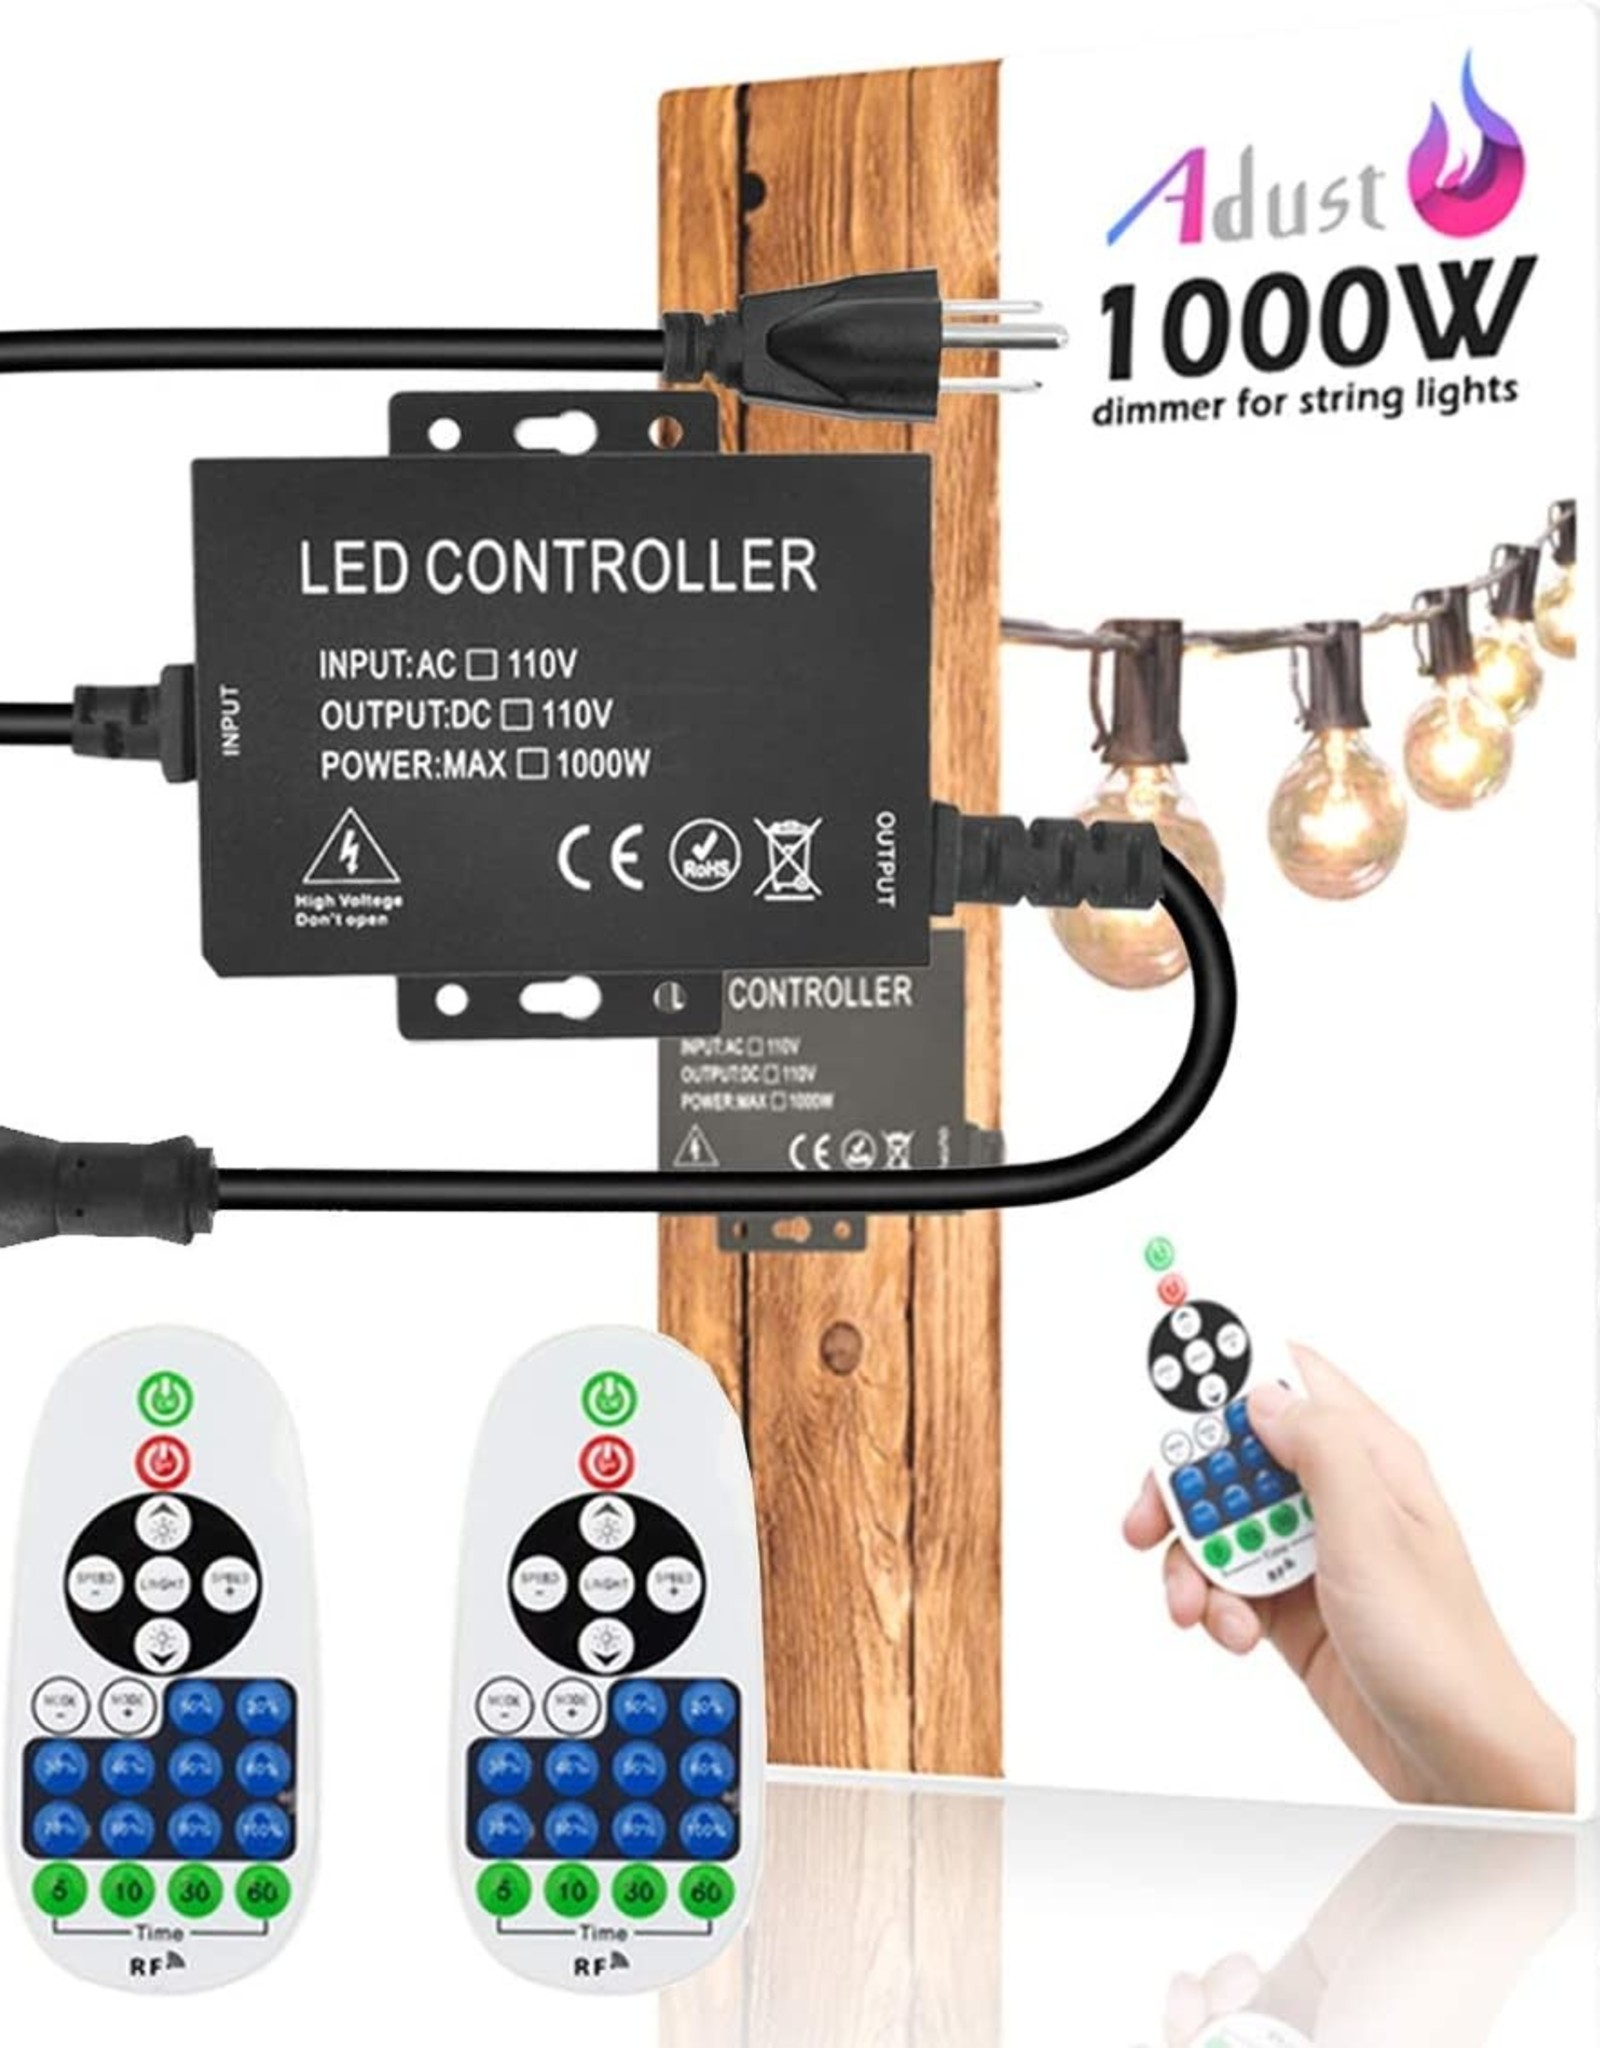 Adust Light String Remote Plug-in Dimmer - 100W 110V AC 110V 1000W Outdoor String Lights Bulbs Switch, Wireless Remote Control Dimmer, 3 Prong Outlet, Timer Switch, Waterproof IP 65